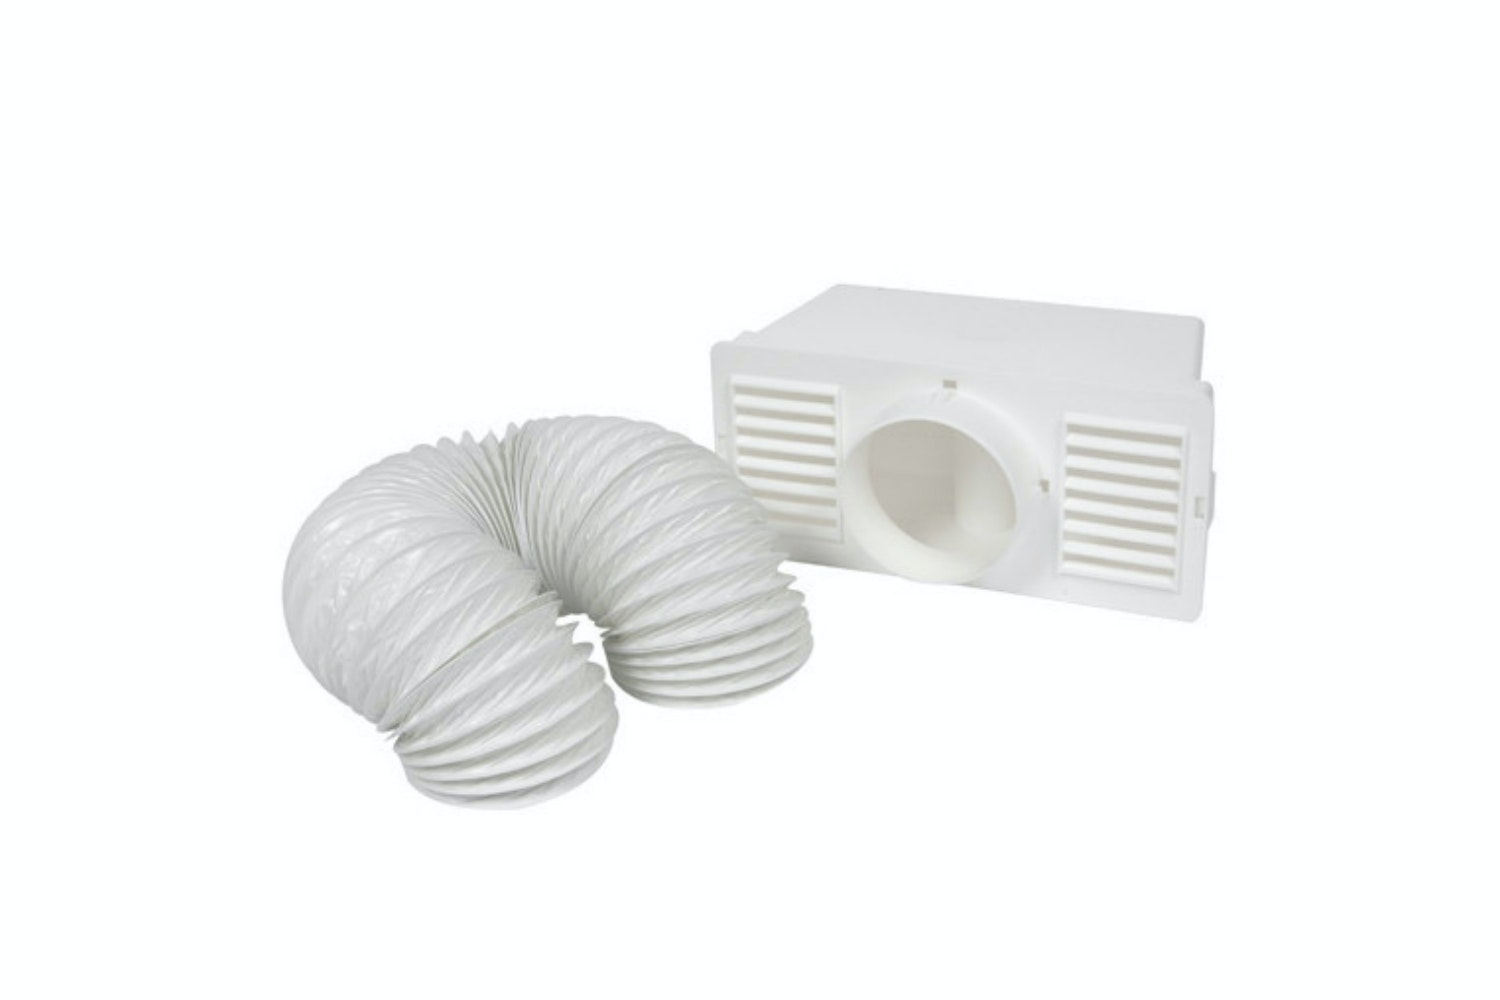 Electrolux Universal Tumble Dryer Indoor Vent Kit | 50294700005